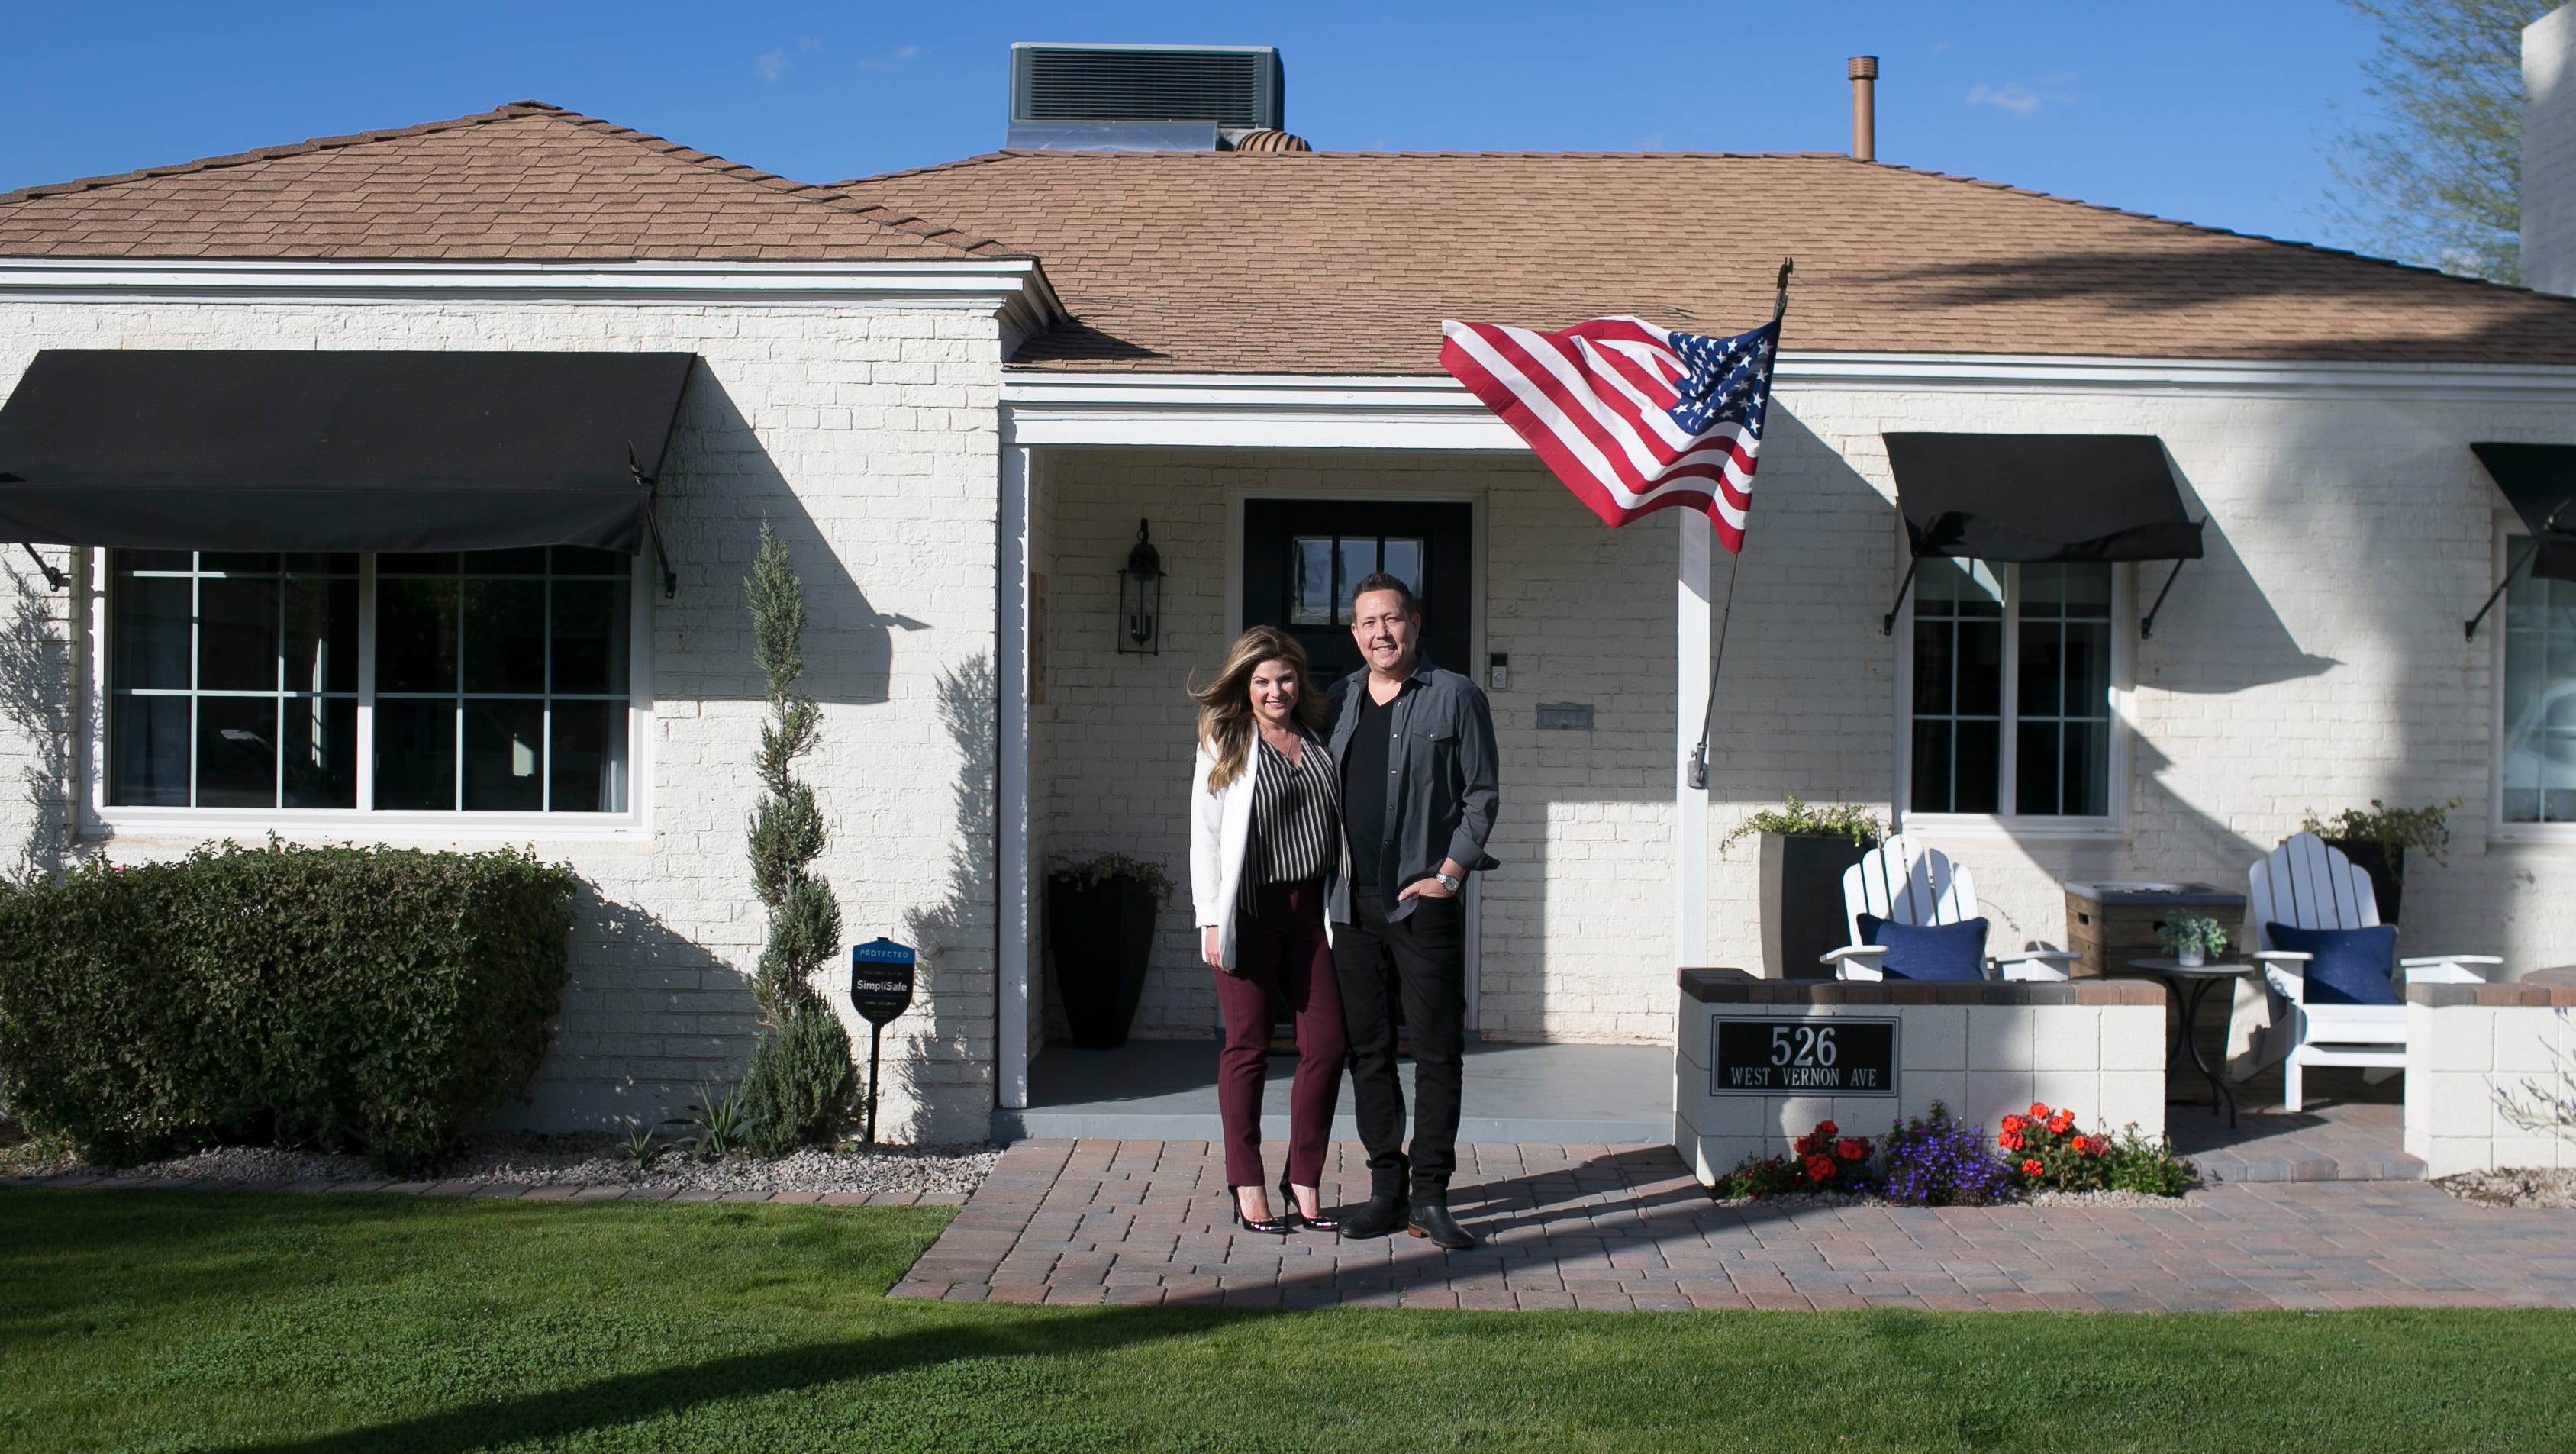 Historic Phoenix home tours — like the one this weekend in Willo — draw crowds